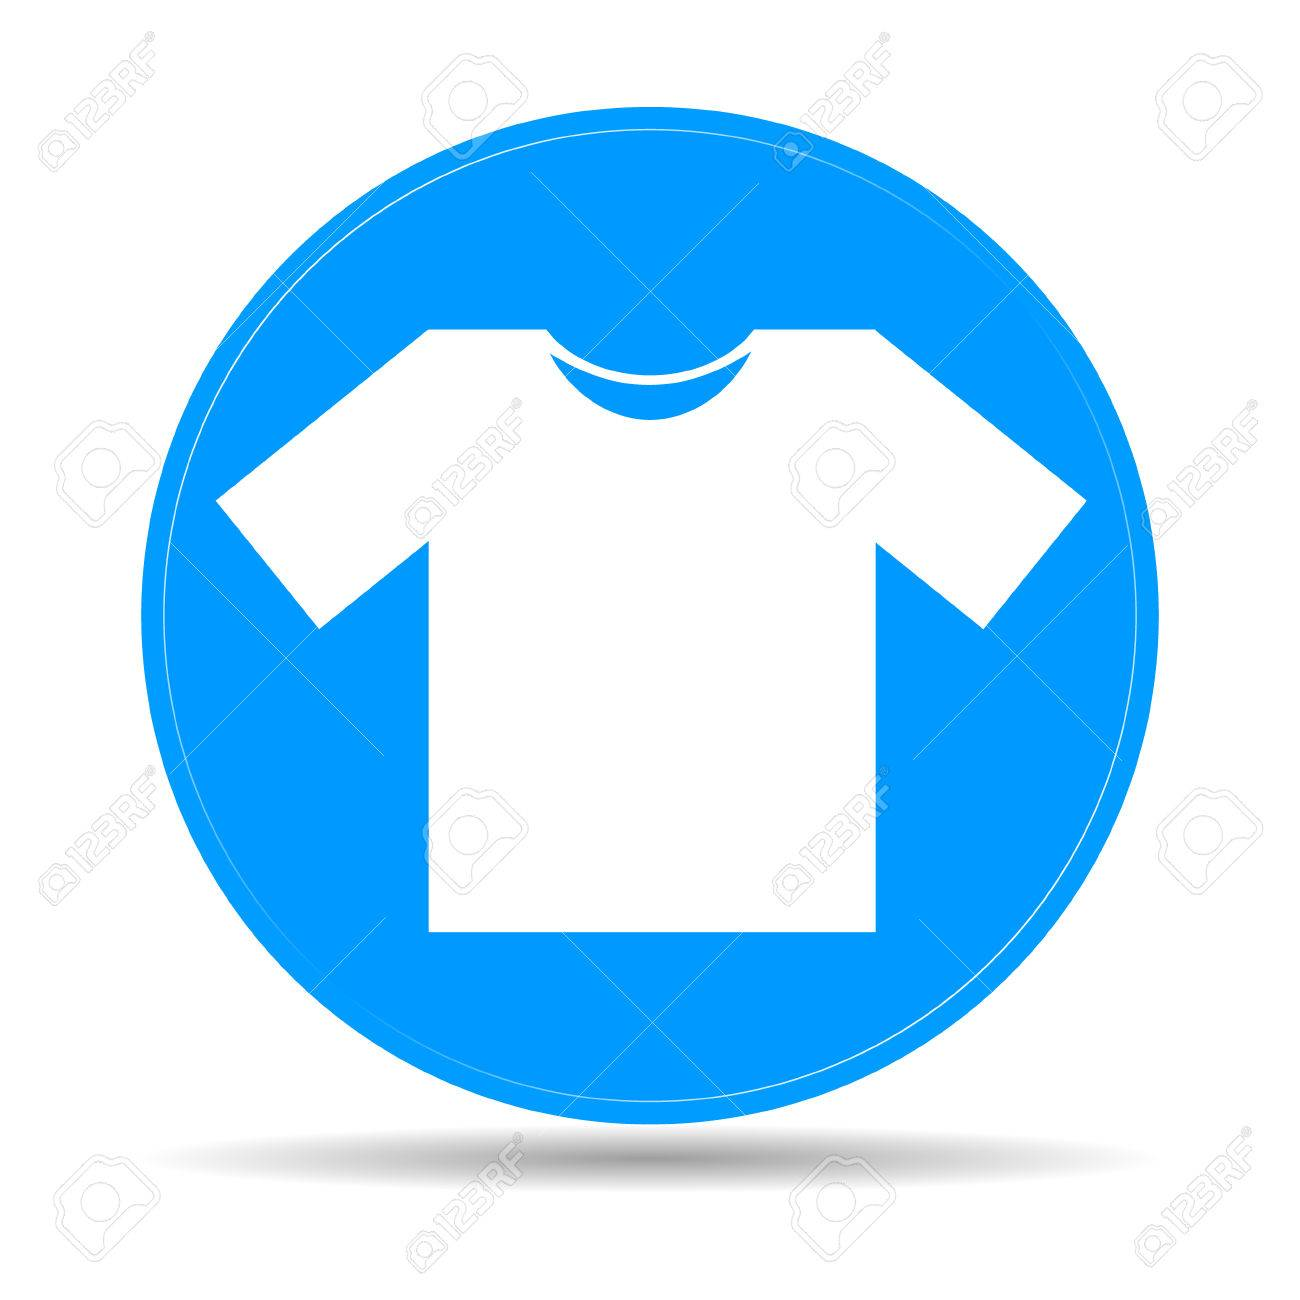 tshirt icon icon flat illustrator eps 10 royalty free cliparts vectors and stock illustration image 35135146 tshirt icon icon flat illustrator eps 10